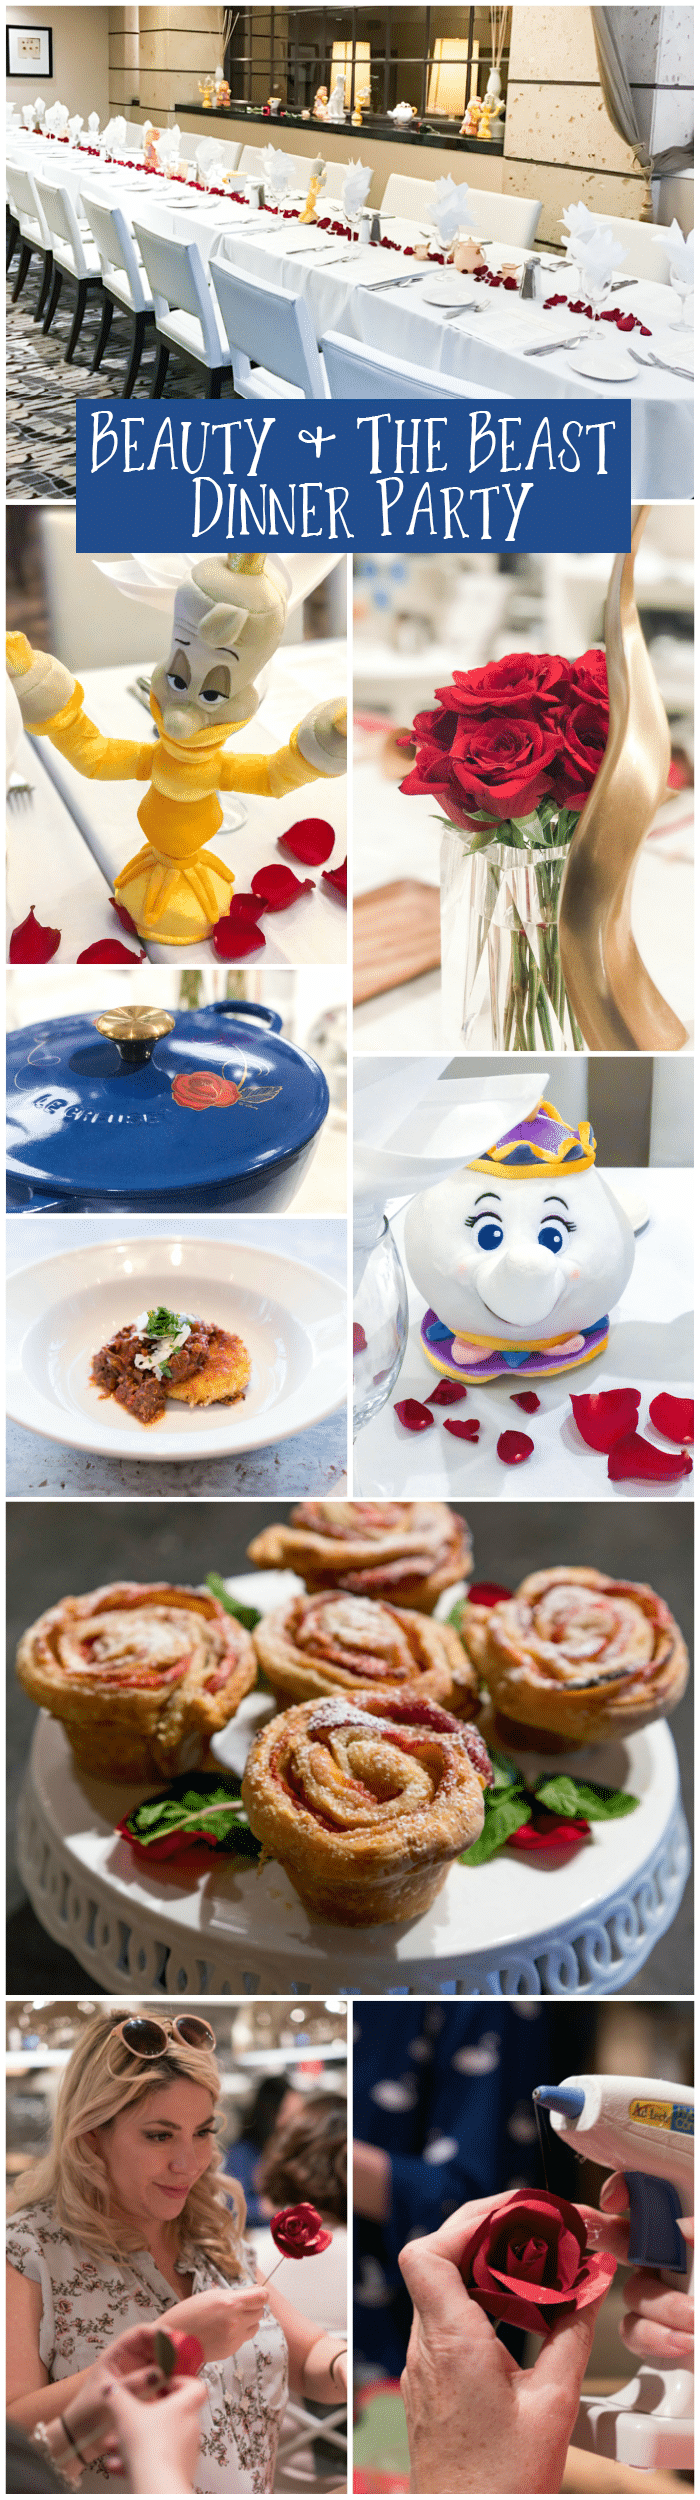 Beauty and the Beast Dinner Party - April Golightly